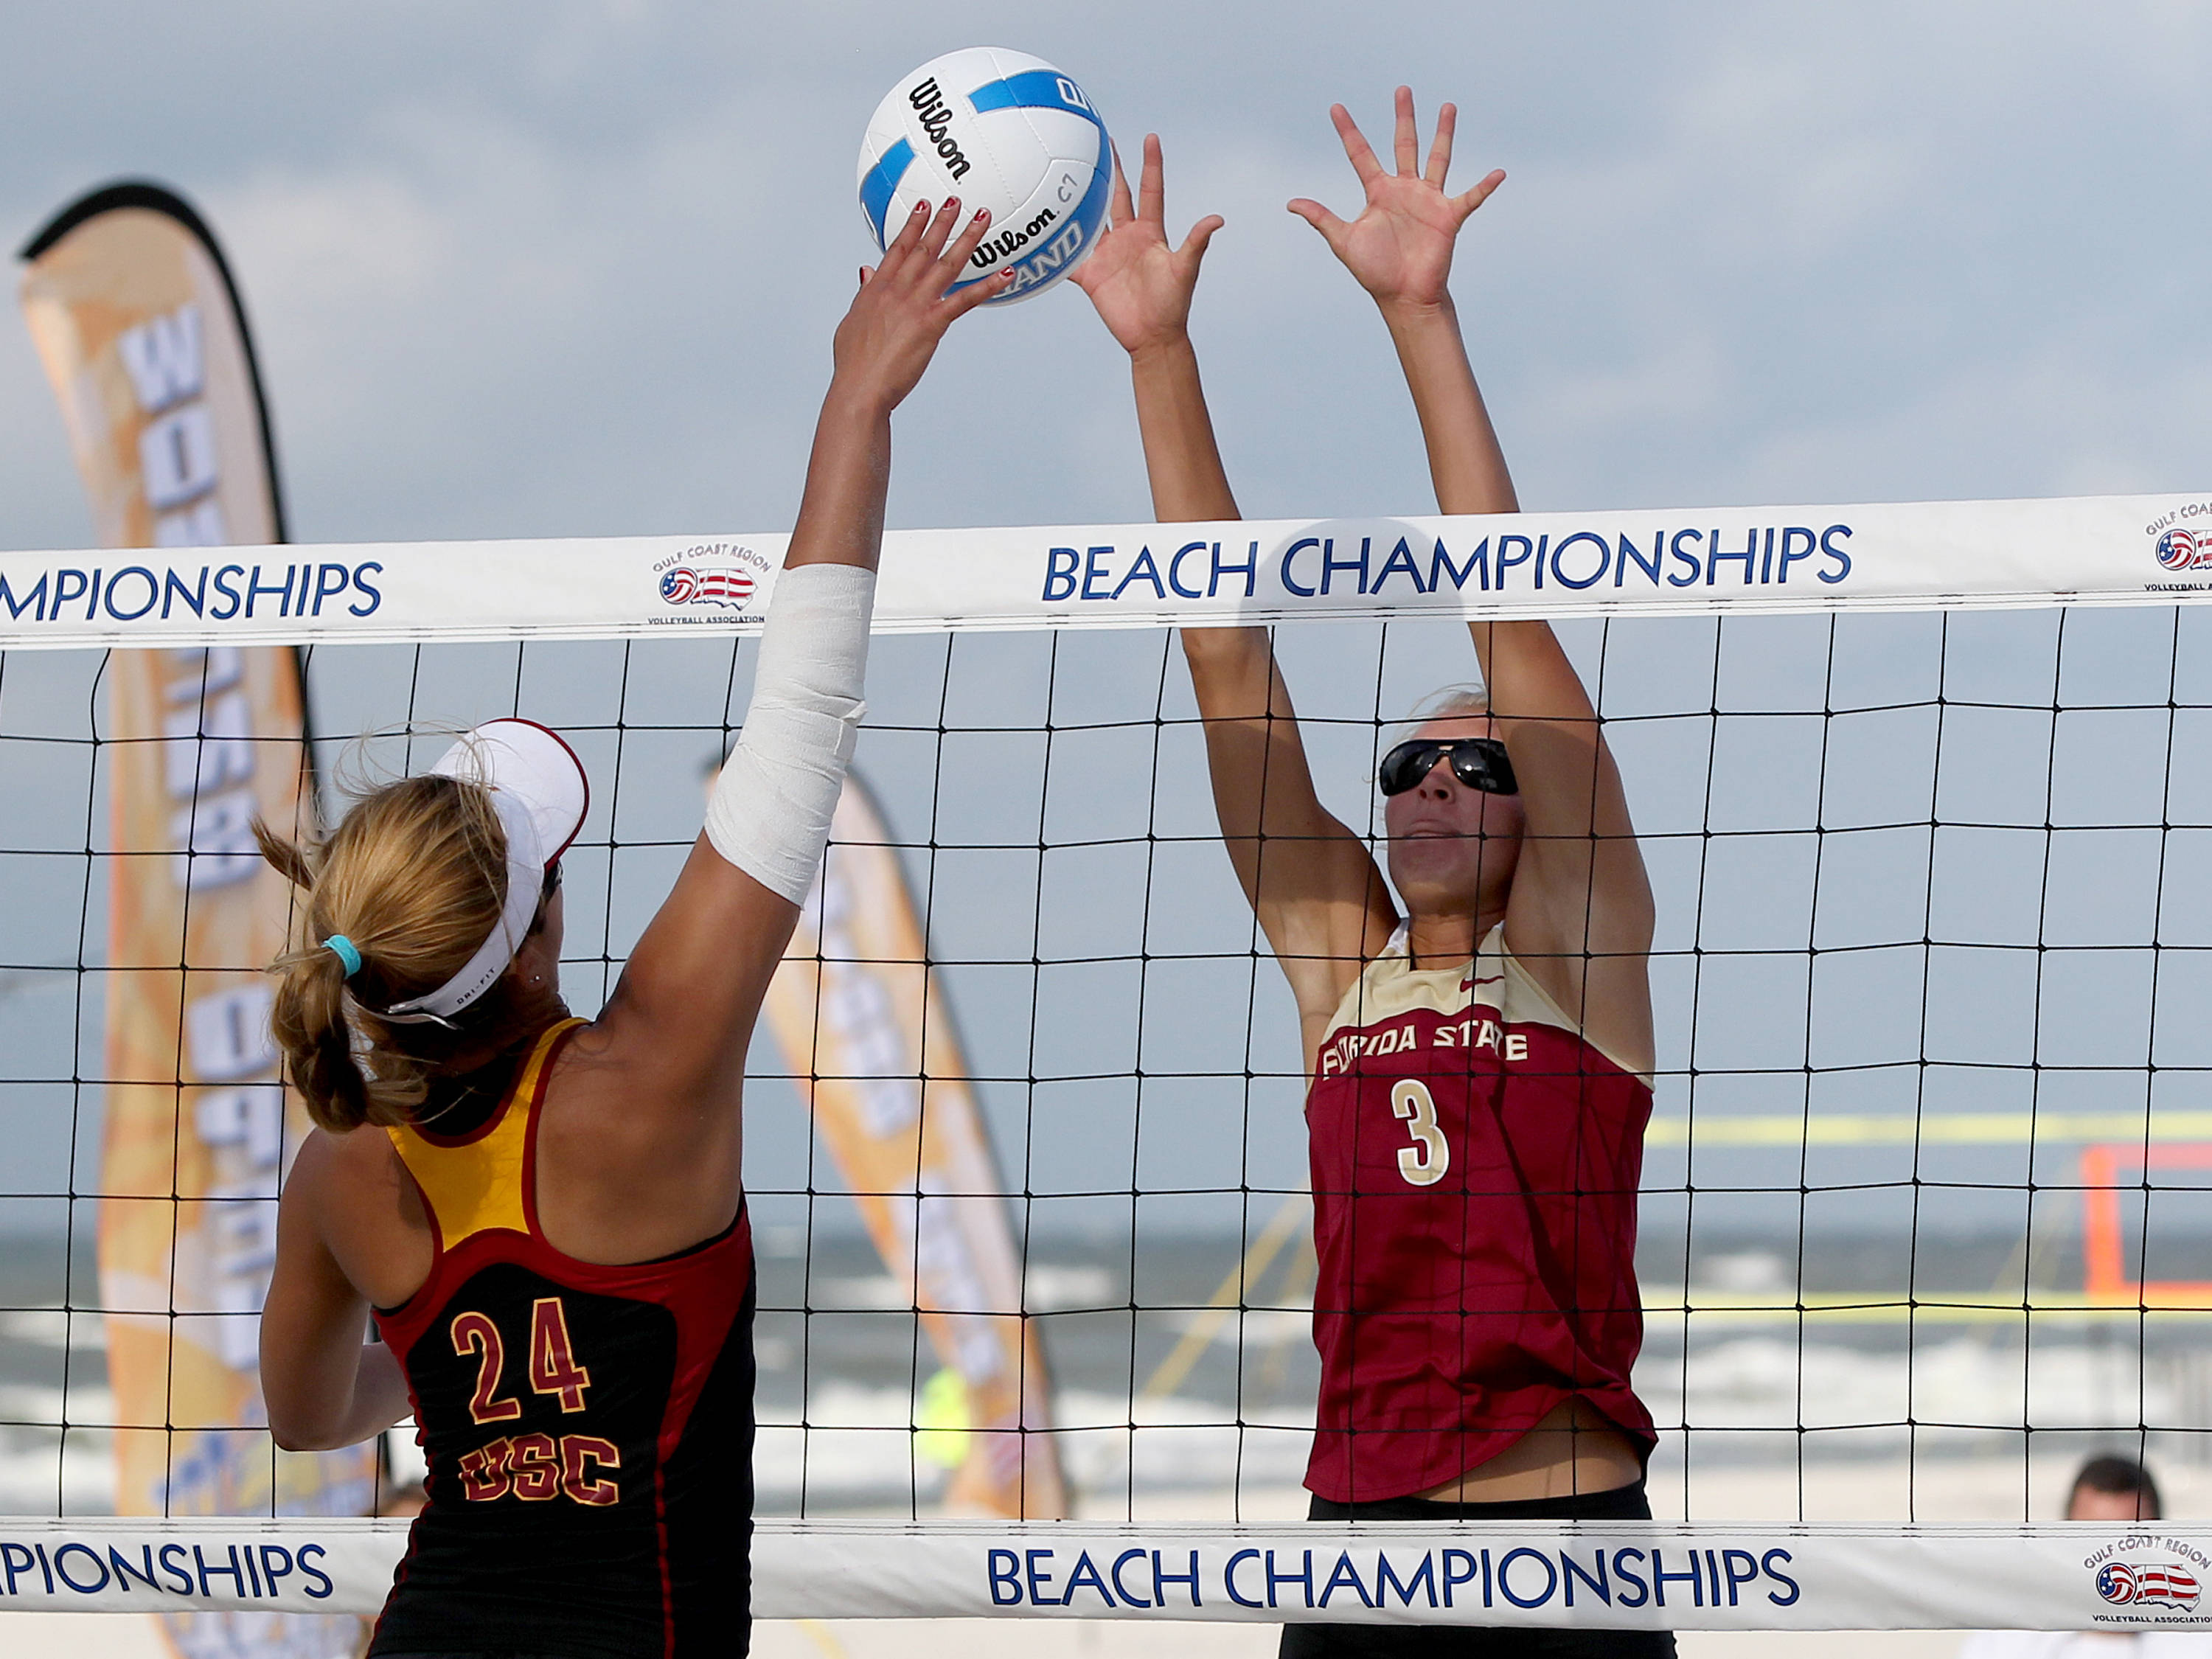 Jule Brown, AVCA Collegiate Sand Volleyball National  Championships - Pairs,  Gulf Shores, Alabama, 05/05/13 . (Photo by Steve Musco)